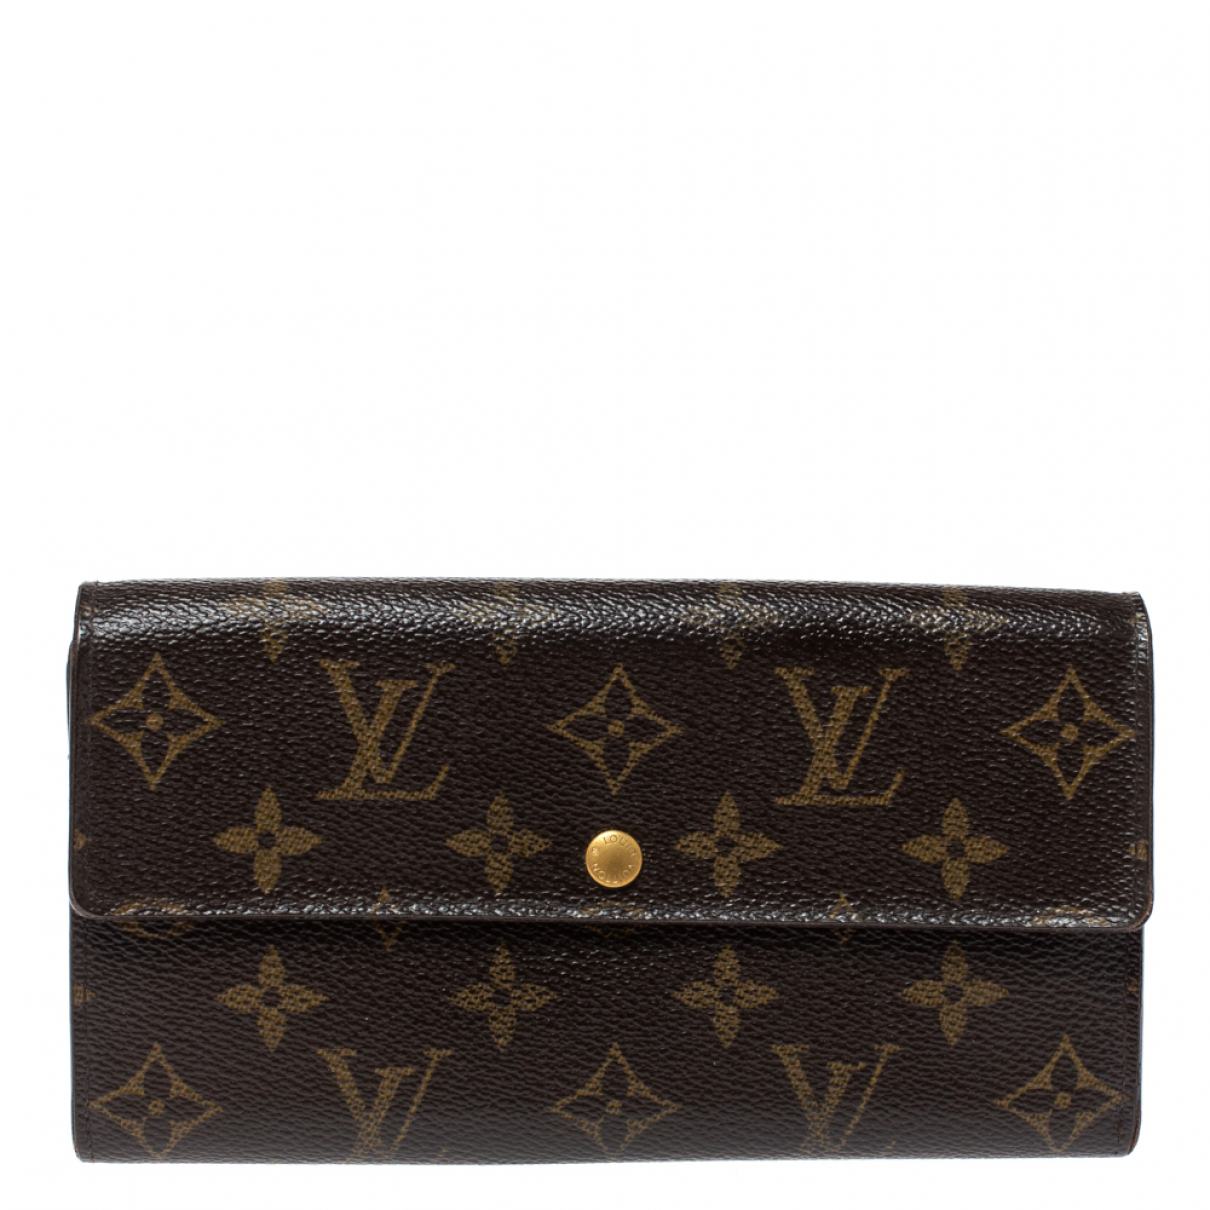 Louis Vuitton \N Portemonnaie in  Braun Leder